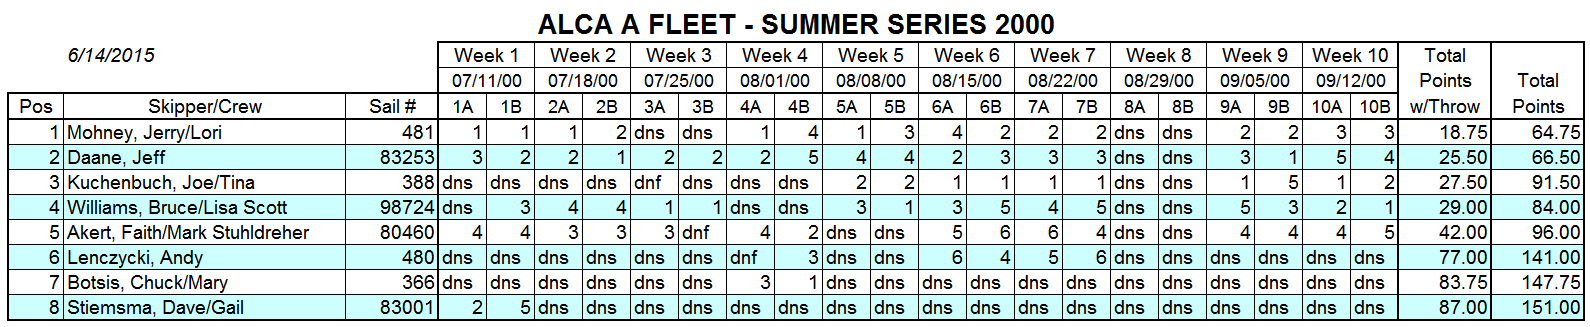 2000 Summer A Fleet Results